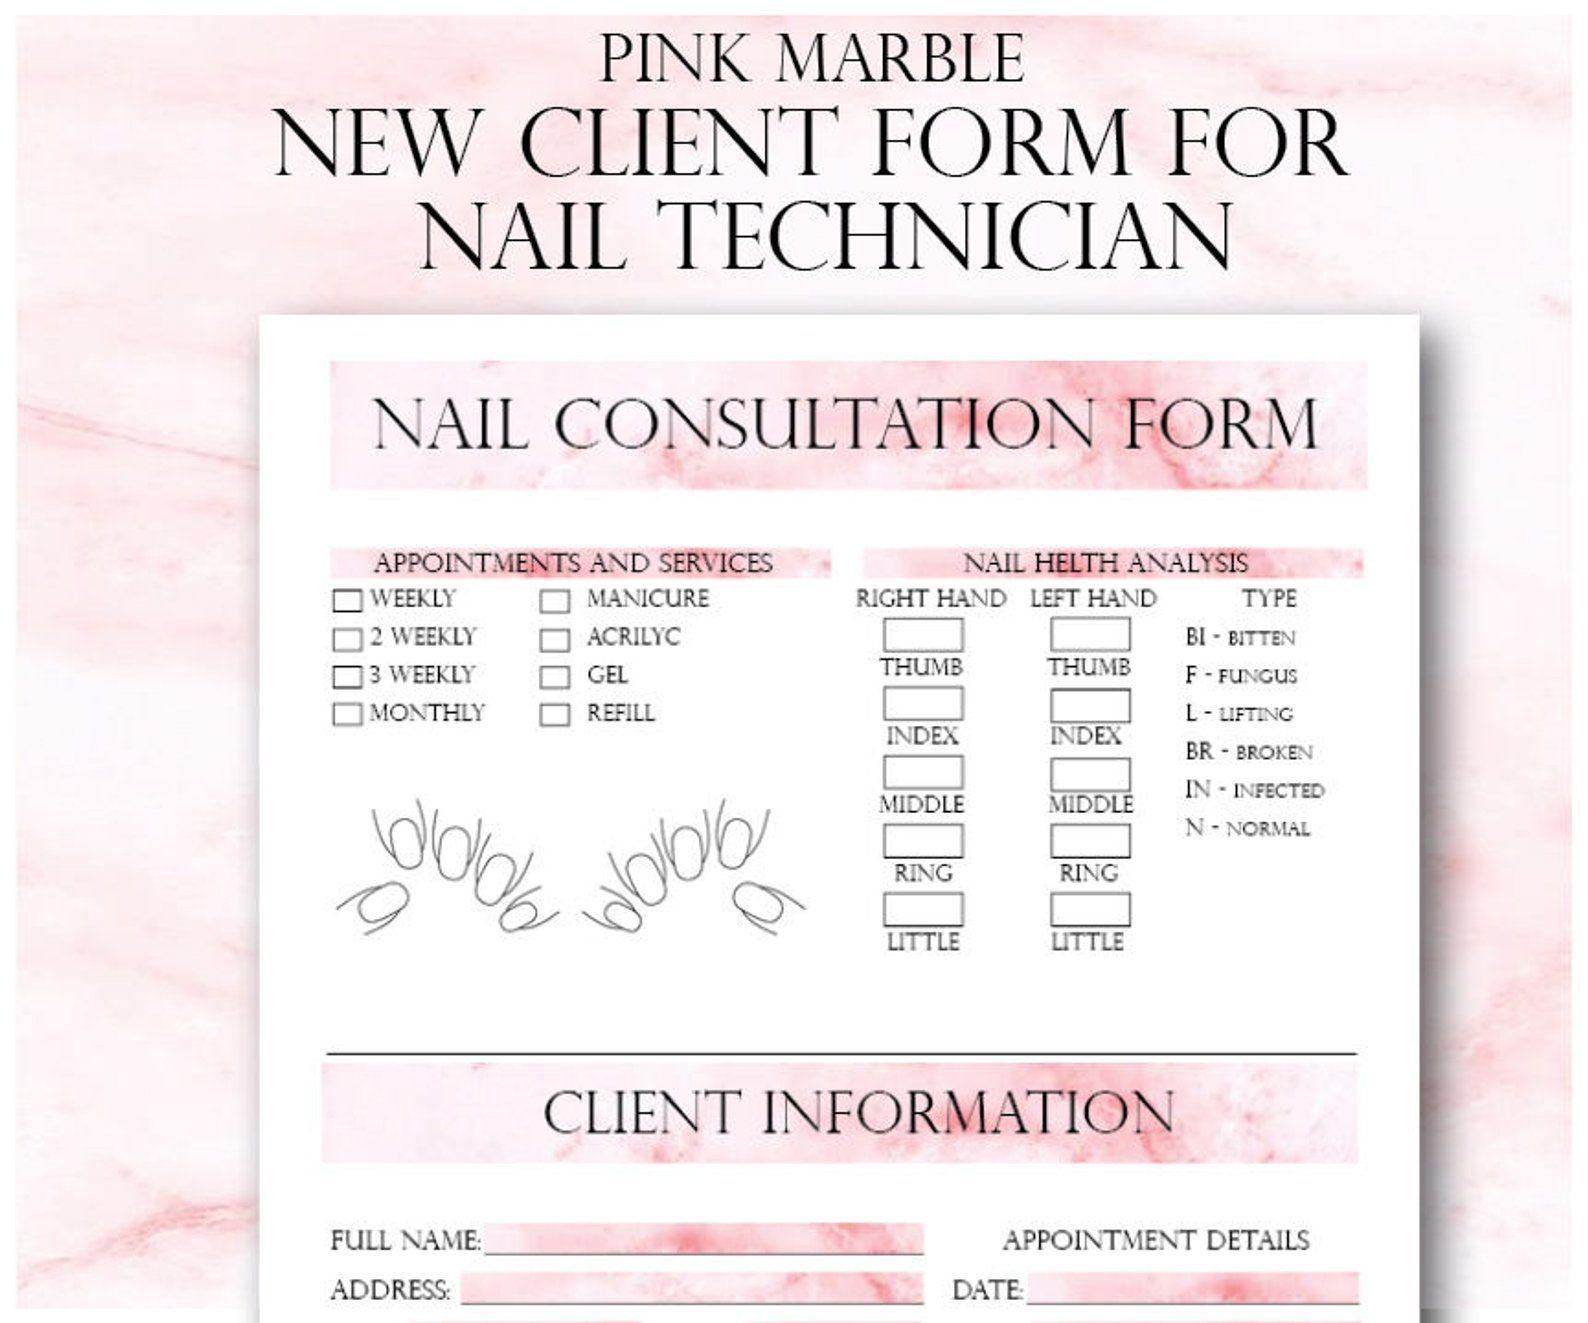 Pink Marble Nail Technician New Client Form Small